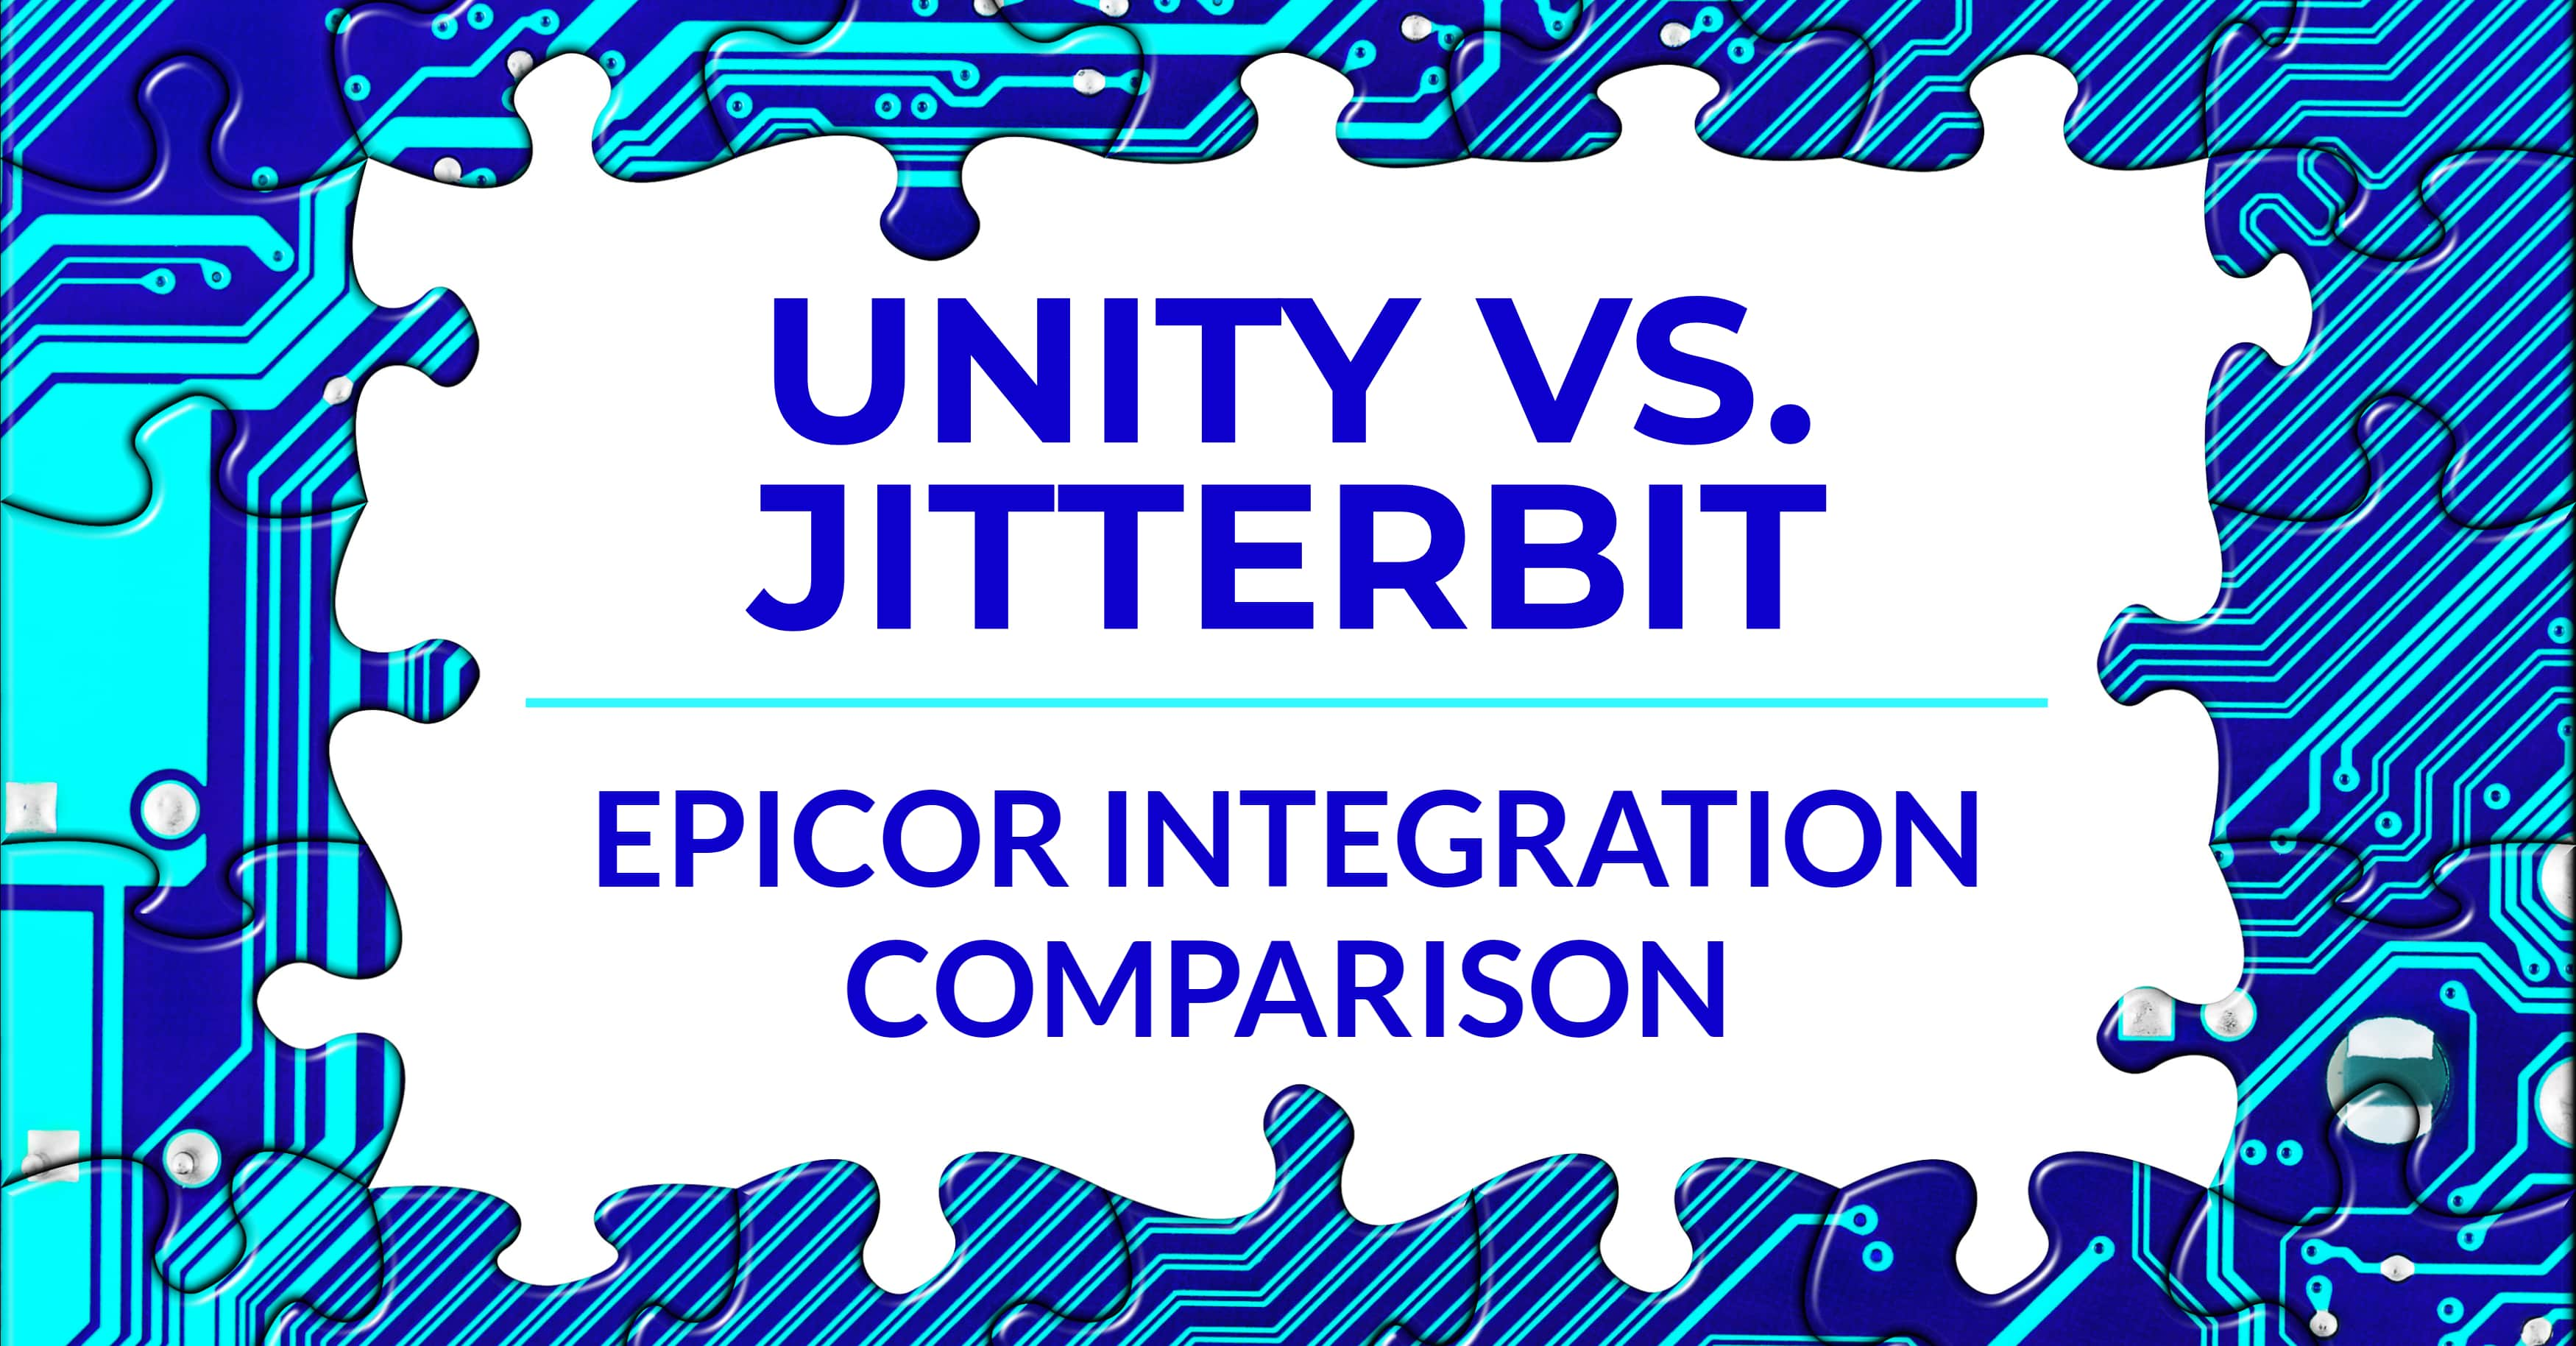 Unity vs. Jitterbit: Epicor Integration Comparison